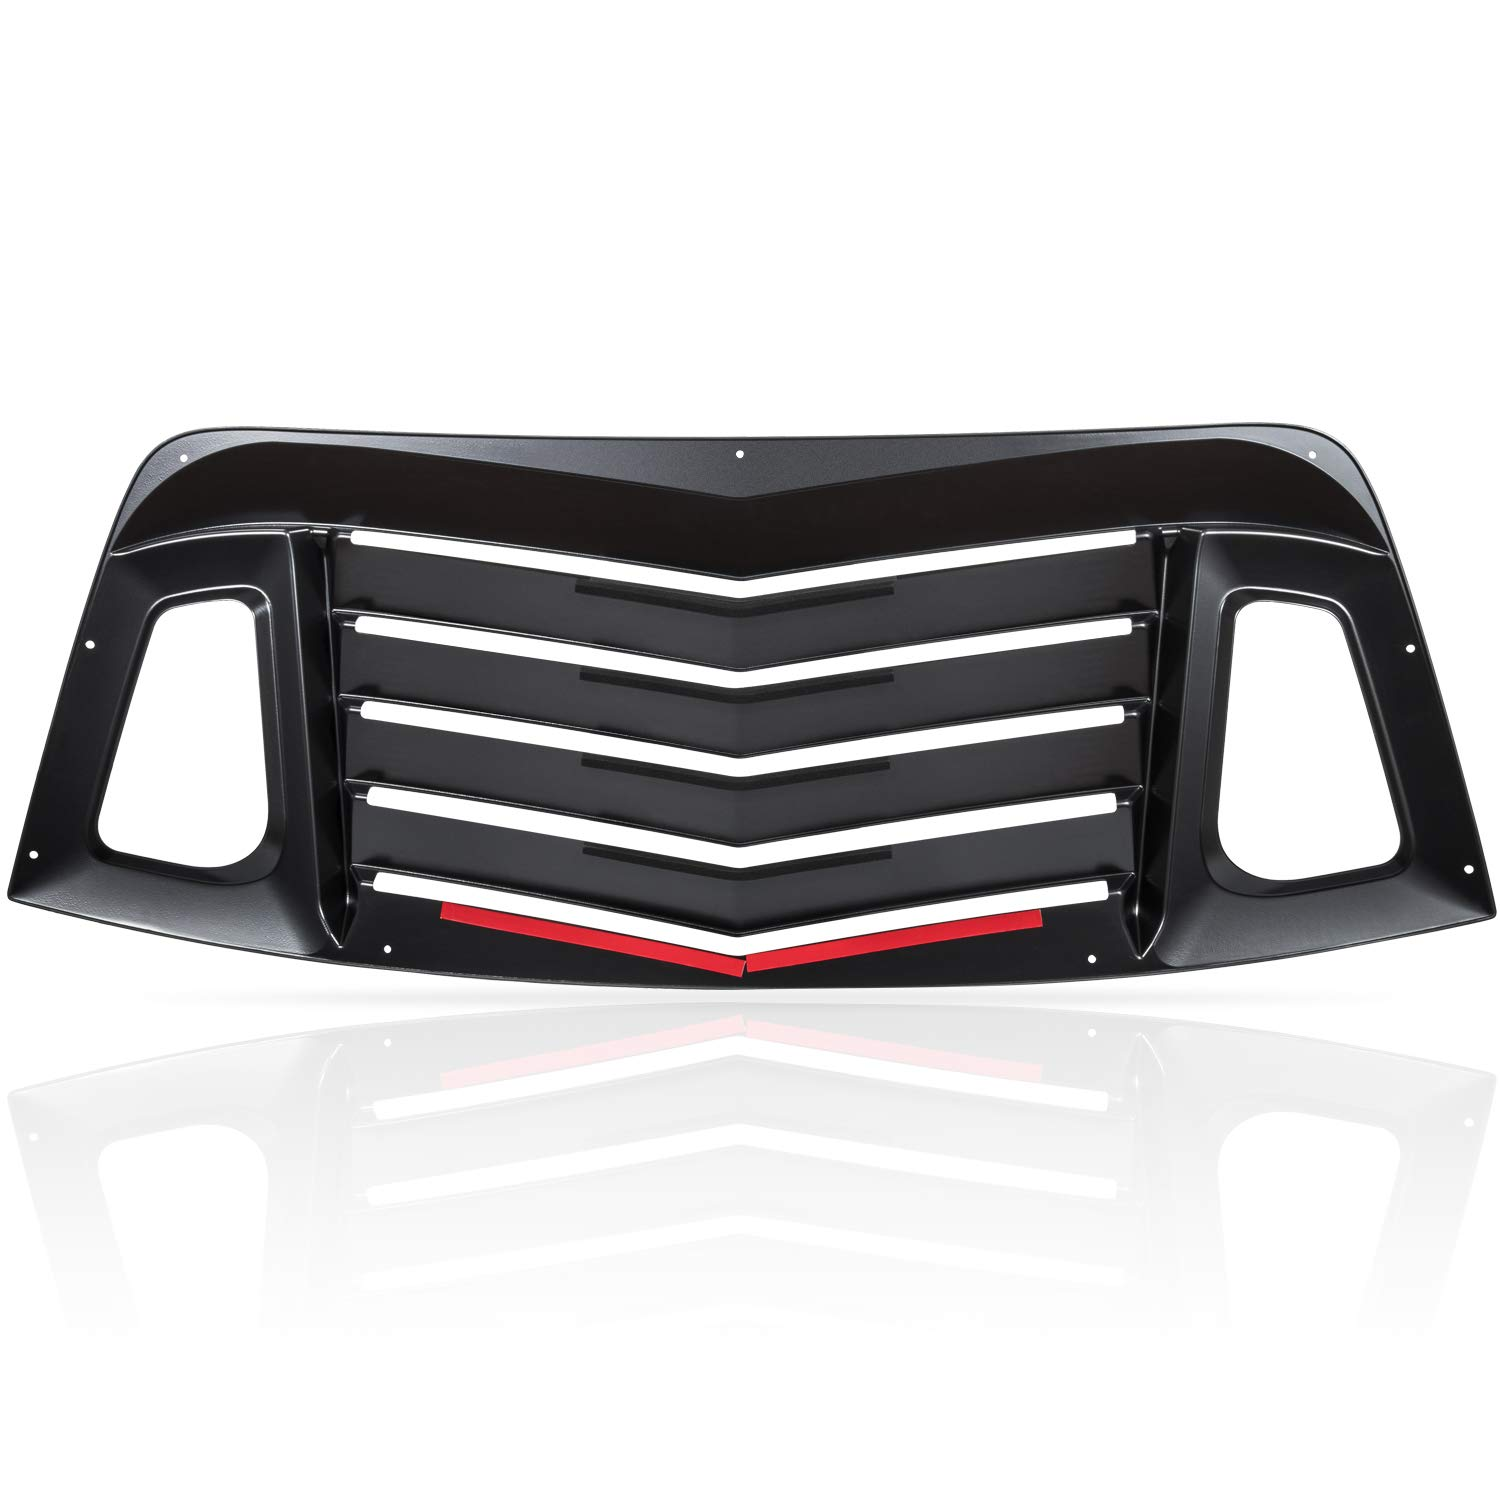 Rear Window Louvers for Dodge Challenger 2008-2020 Matte Black ABS Window Visor Sun Shade Cover Vent